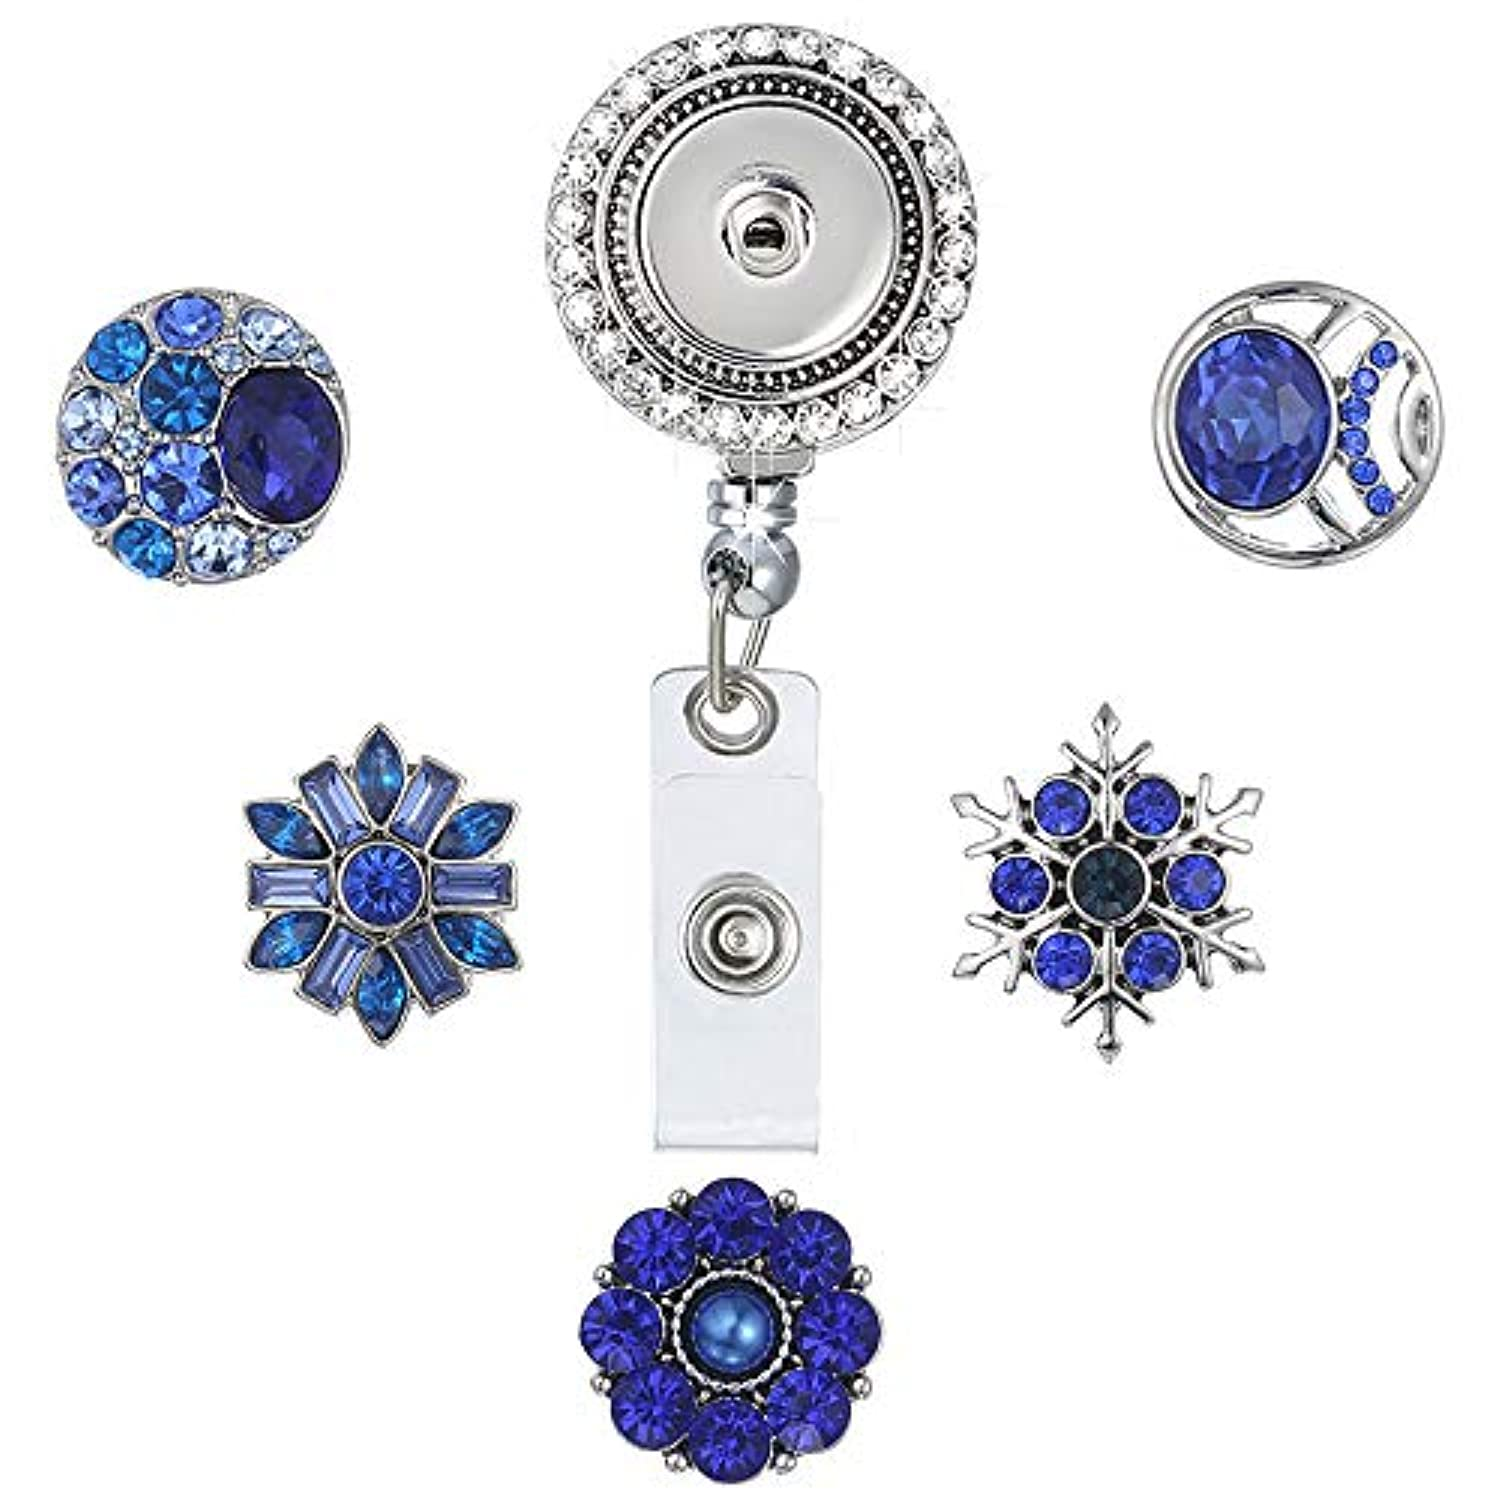 LEGENSTAR Badge Holder Retractable Heavy Duty, Office ID Badge Reel with Crystal, Interchangeable Jewelry with 5 Snap Buttons(Blue)